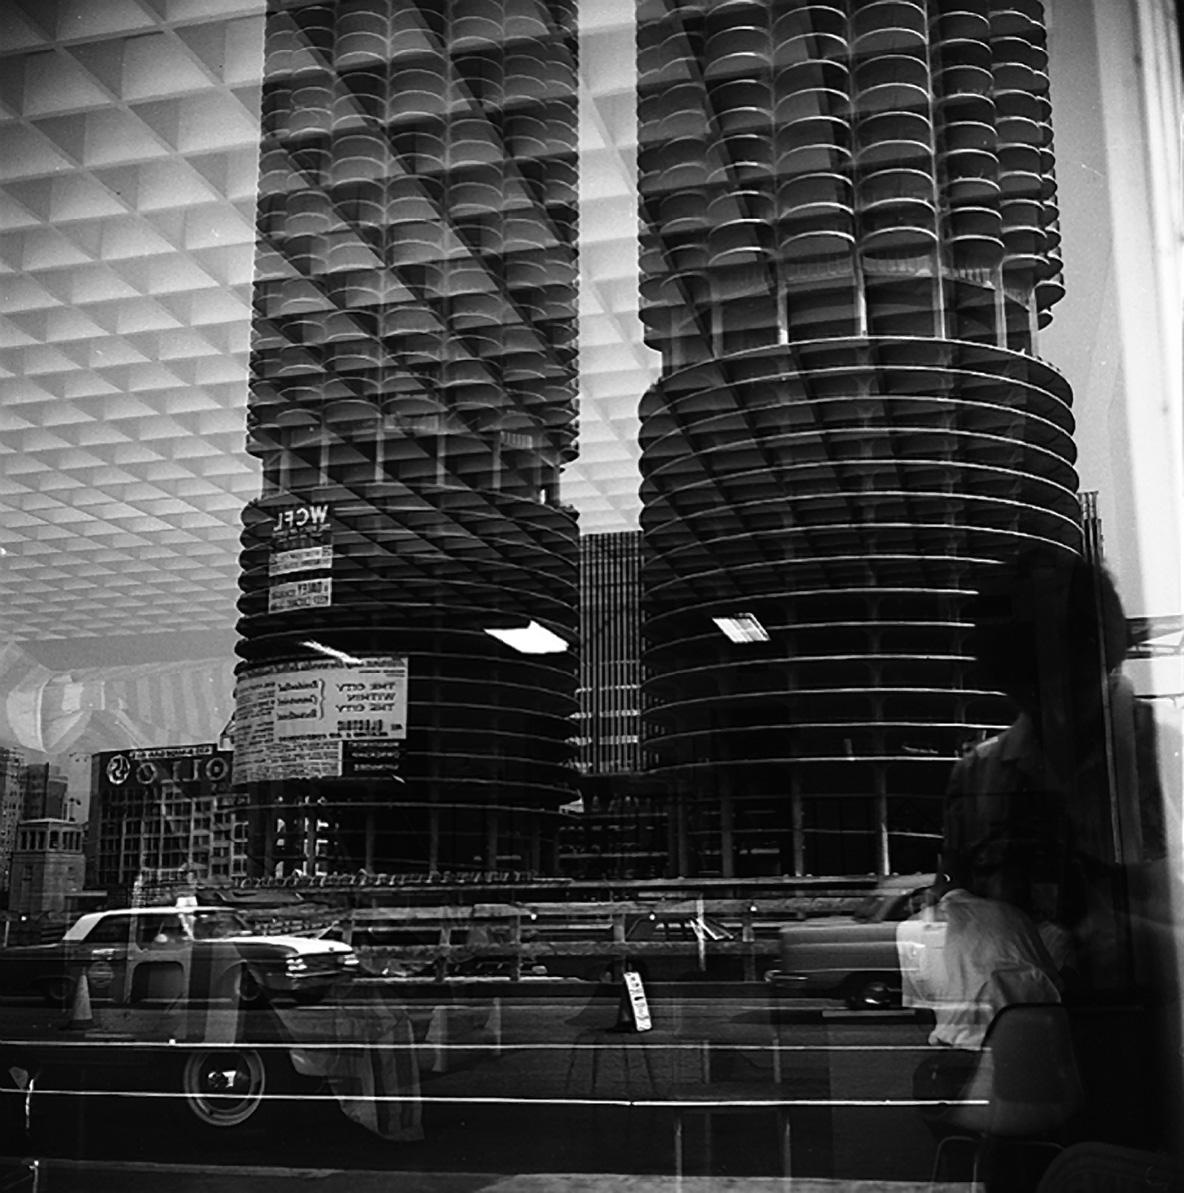 Vivian Maier, Self-portrait, Reflection, Marina City, Chicago, c. 1965